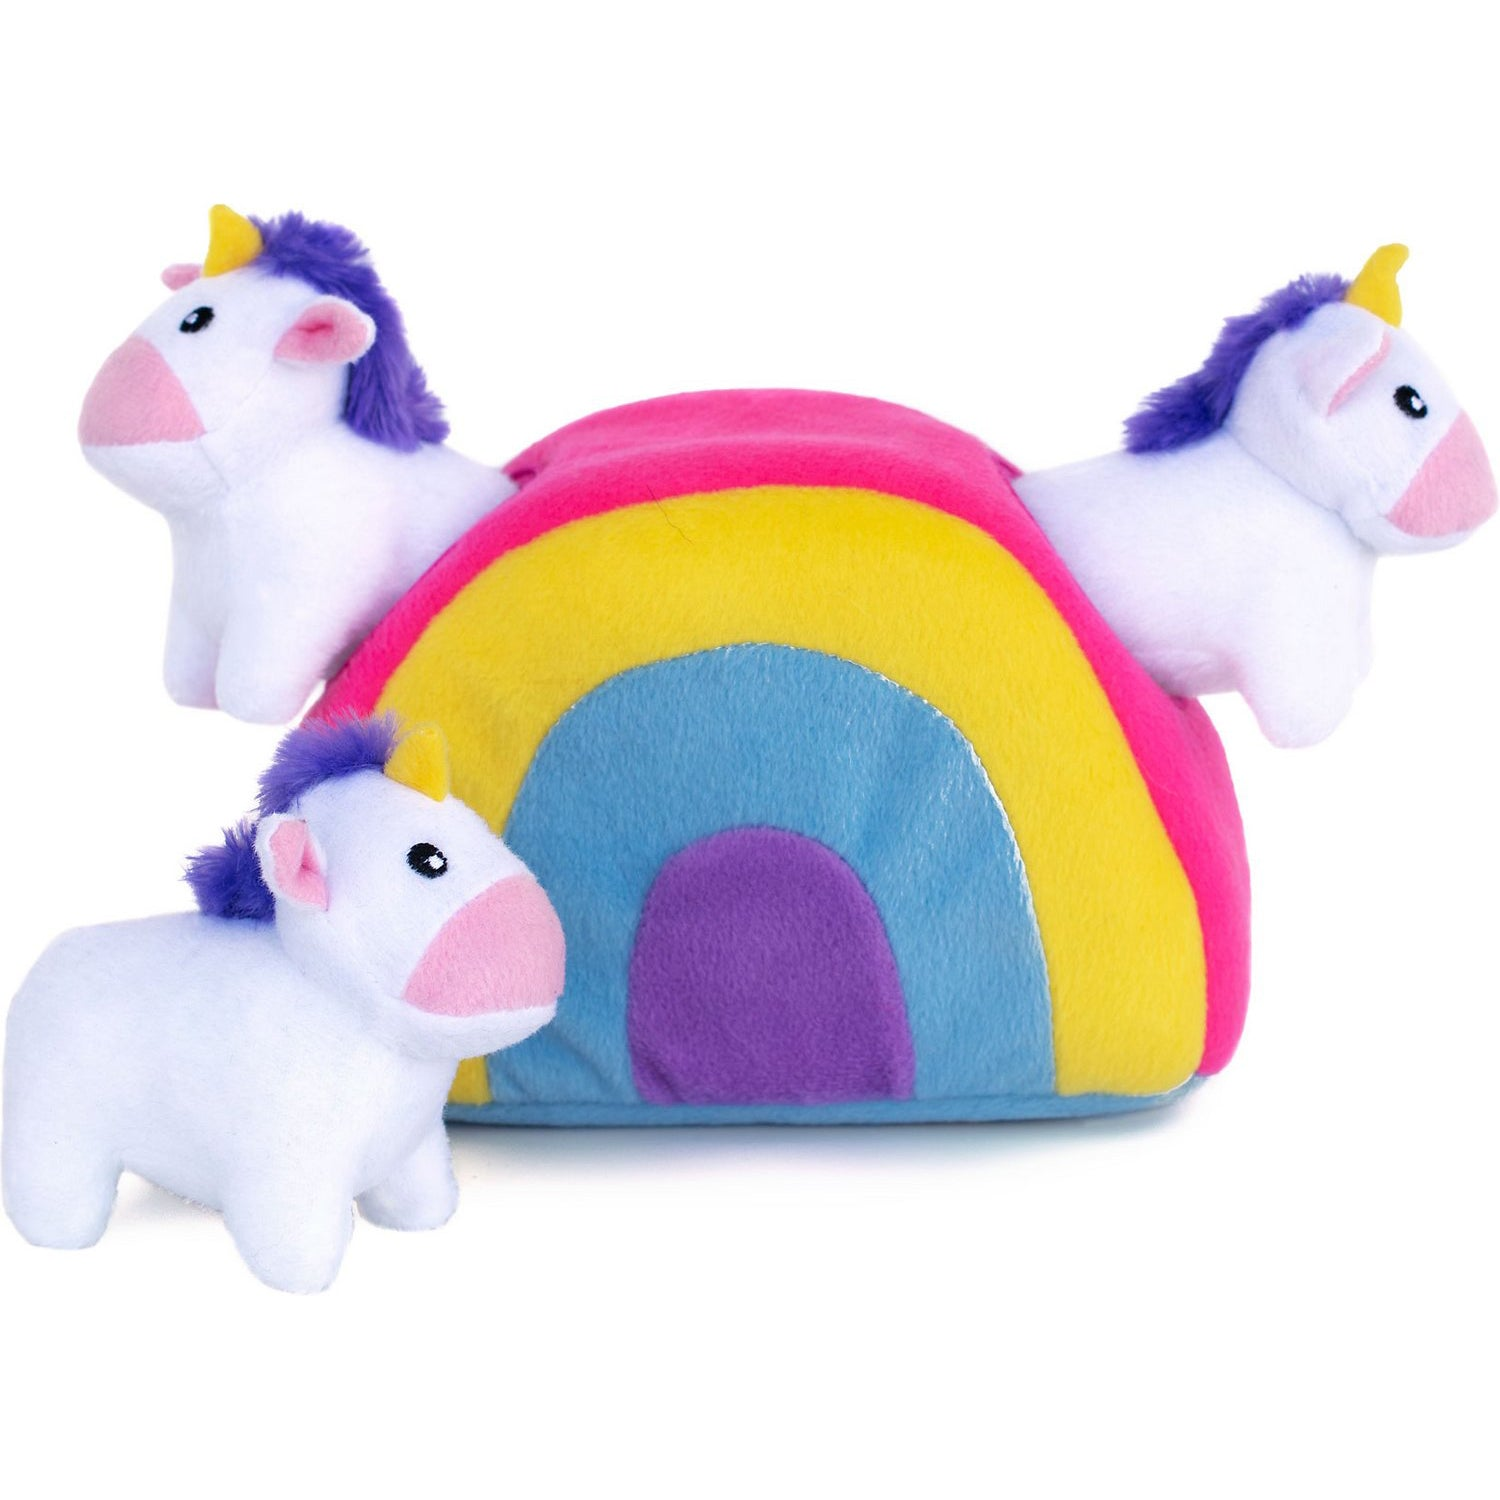 ZippyPaws Zippy Burrow Unicorns in Rainbow